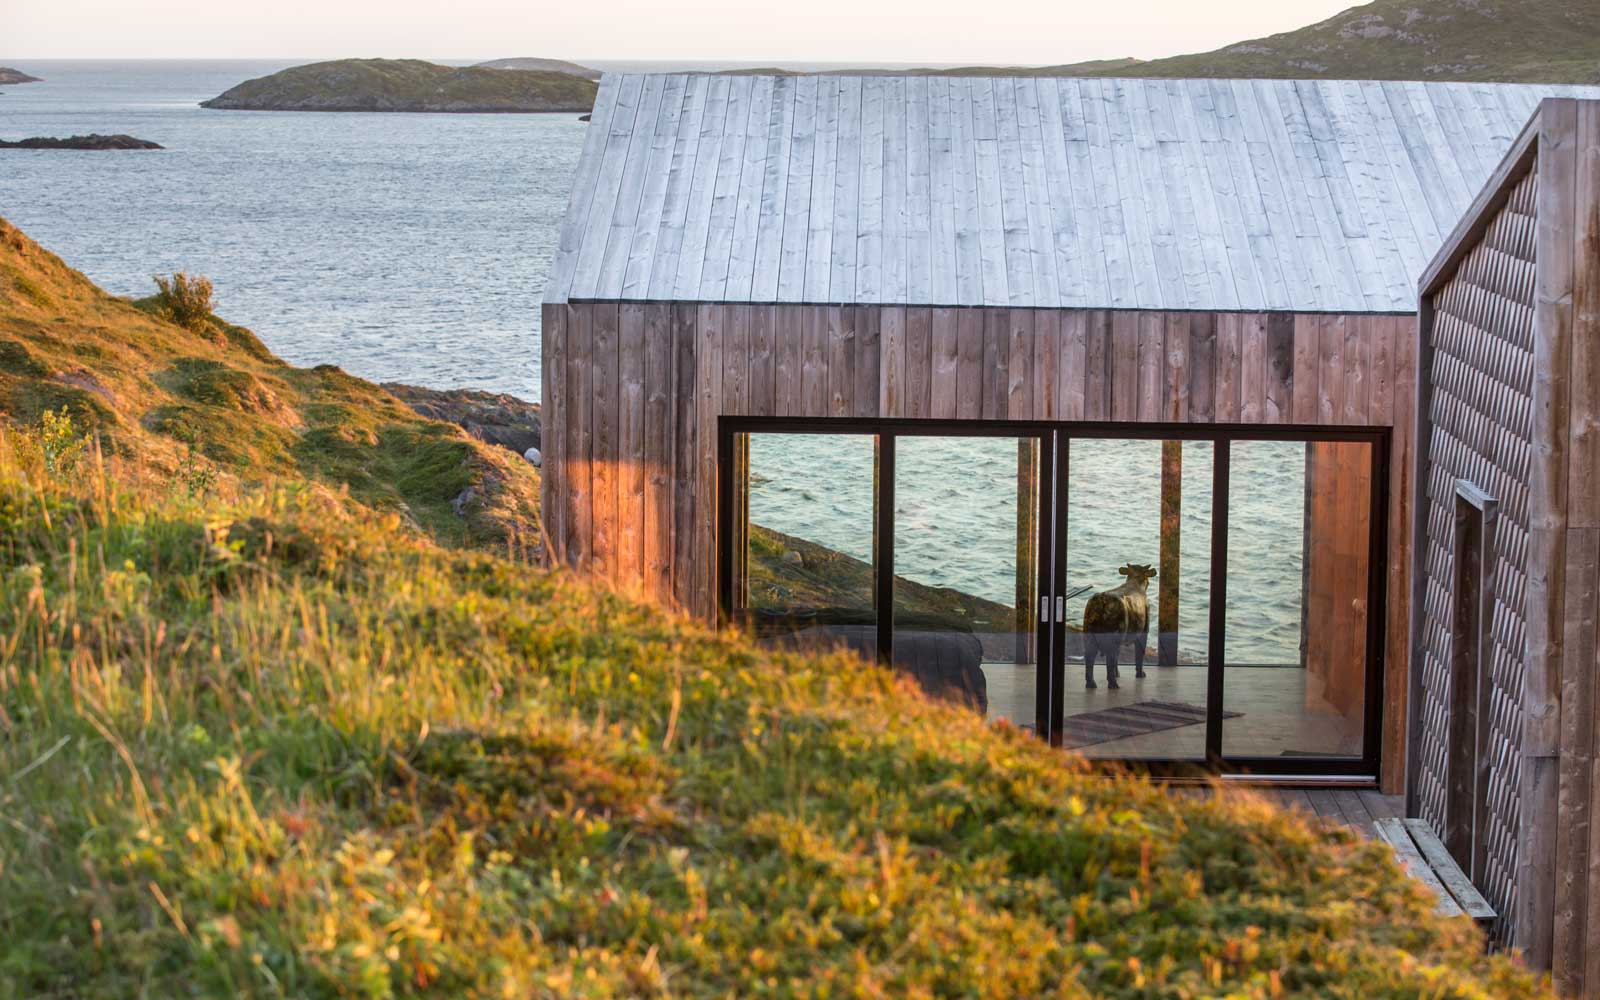 Cabin accommodation at The Arctic Hideaway